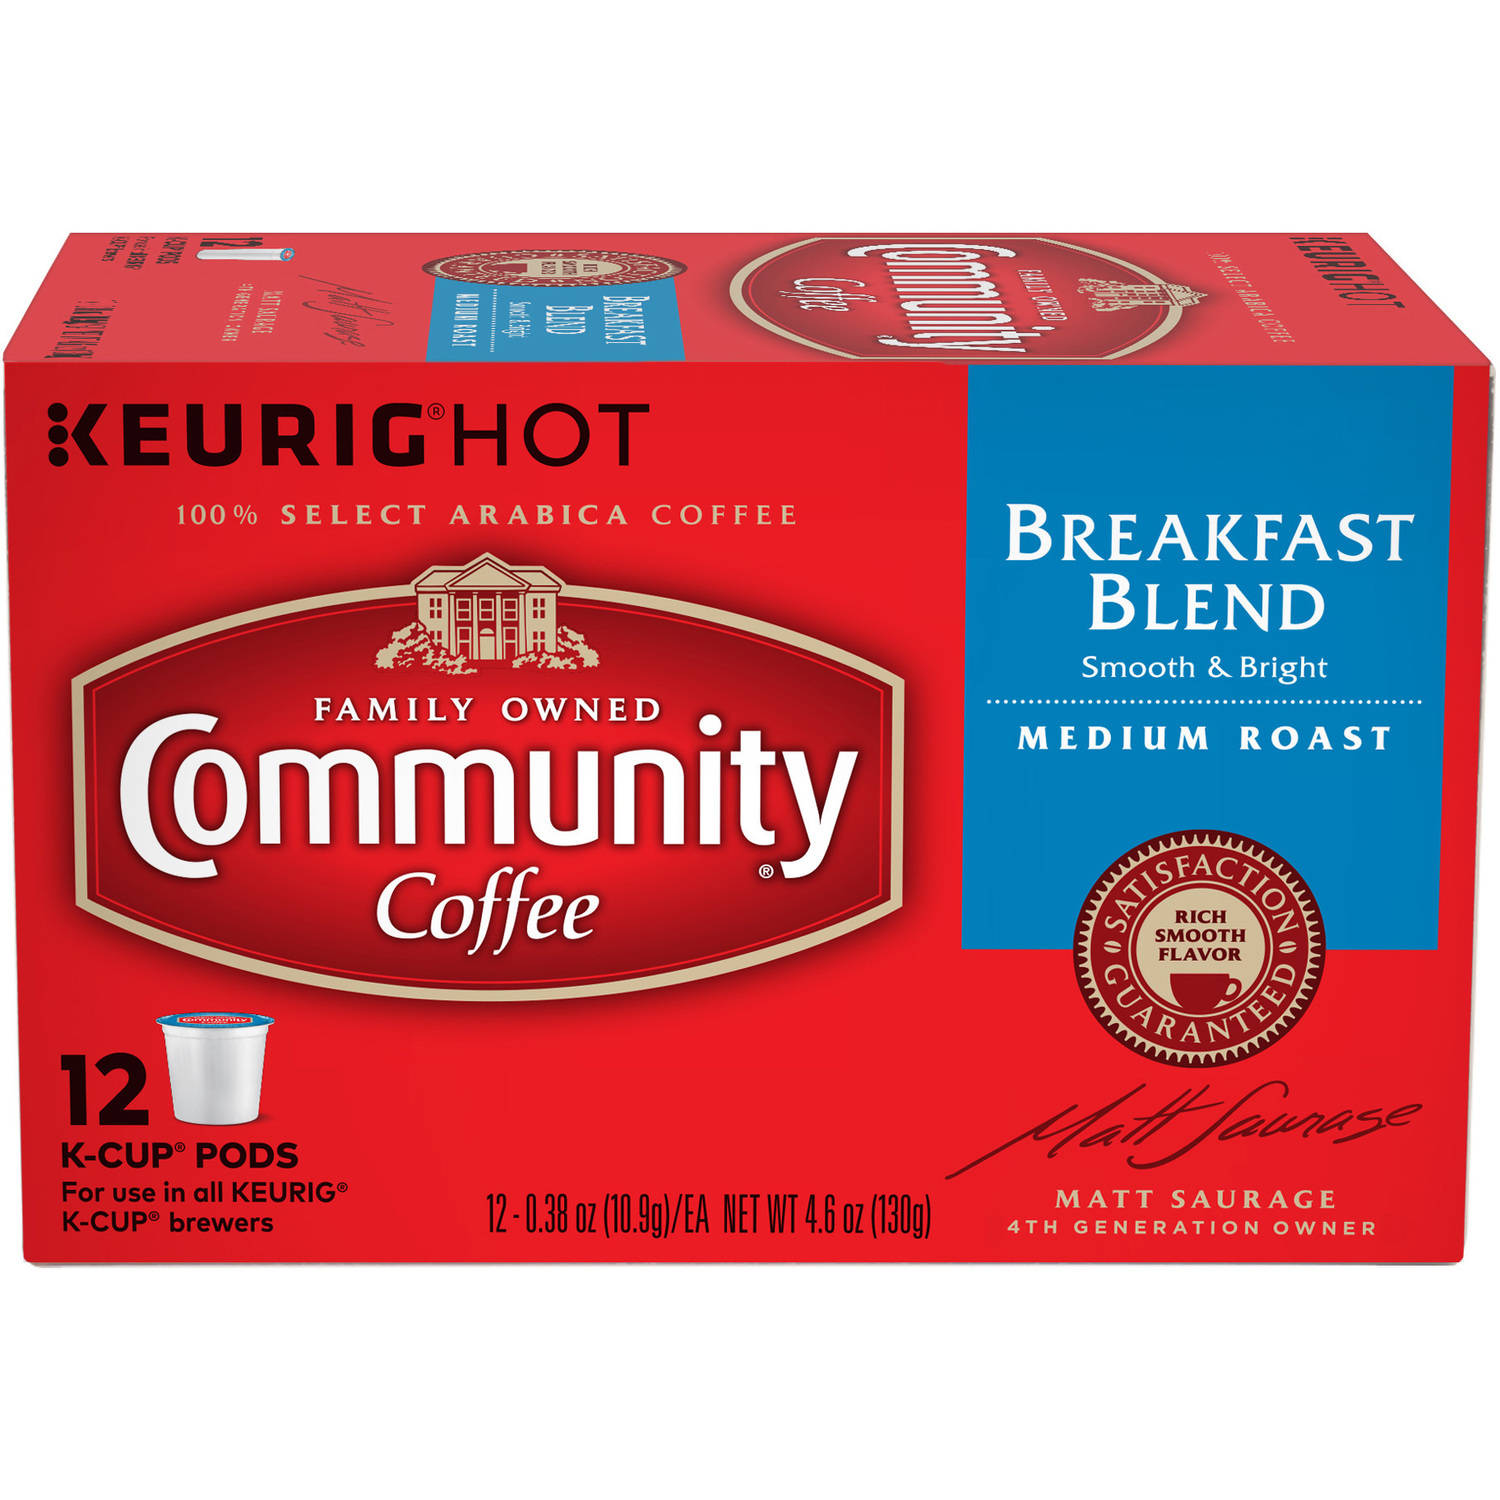 Community Coffee Breakfast Blend Medium Roast Coffee Single Serve Cups, 12 ct, 4.65 oz